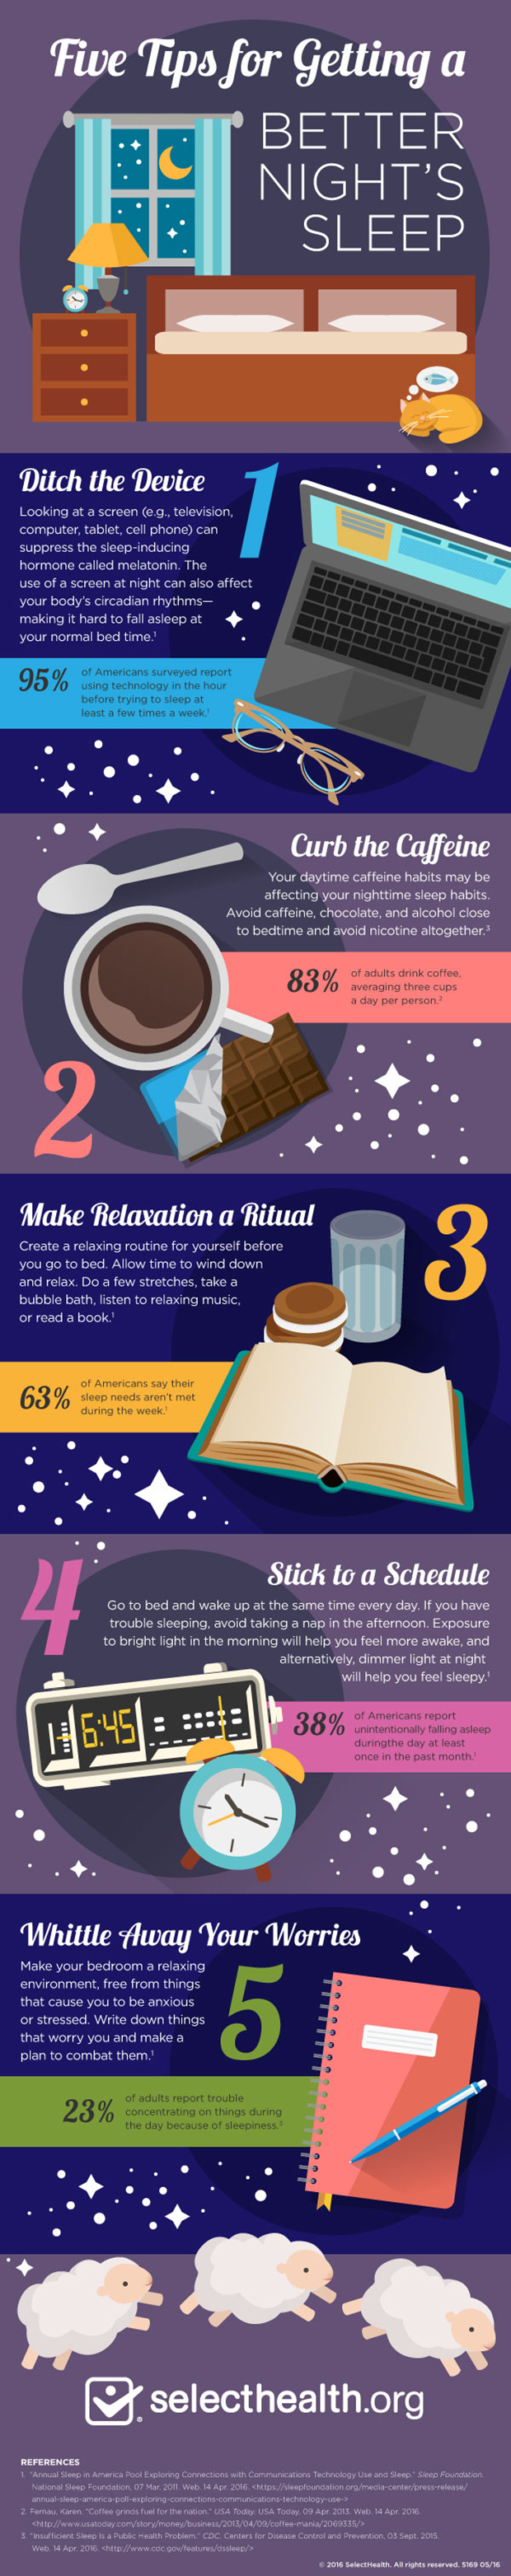 Infographic, 5 tips for getting a better nights sleep